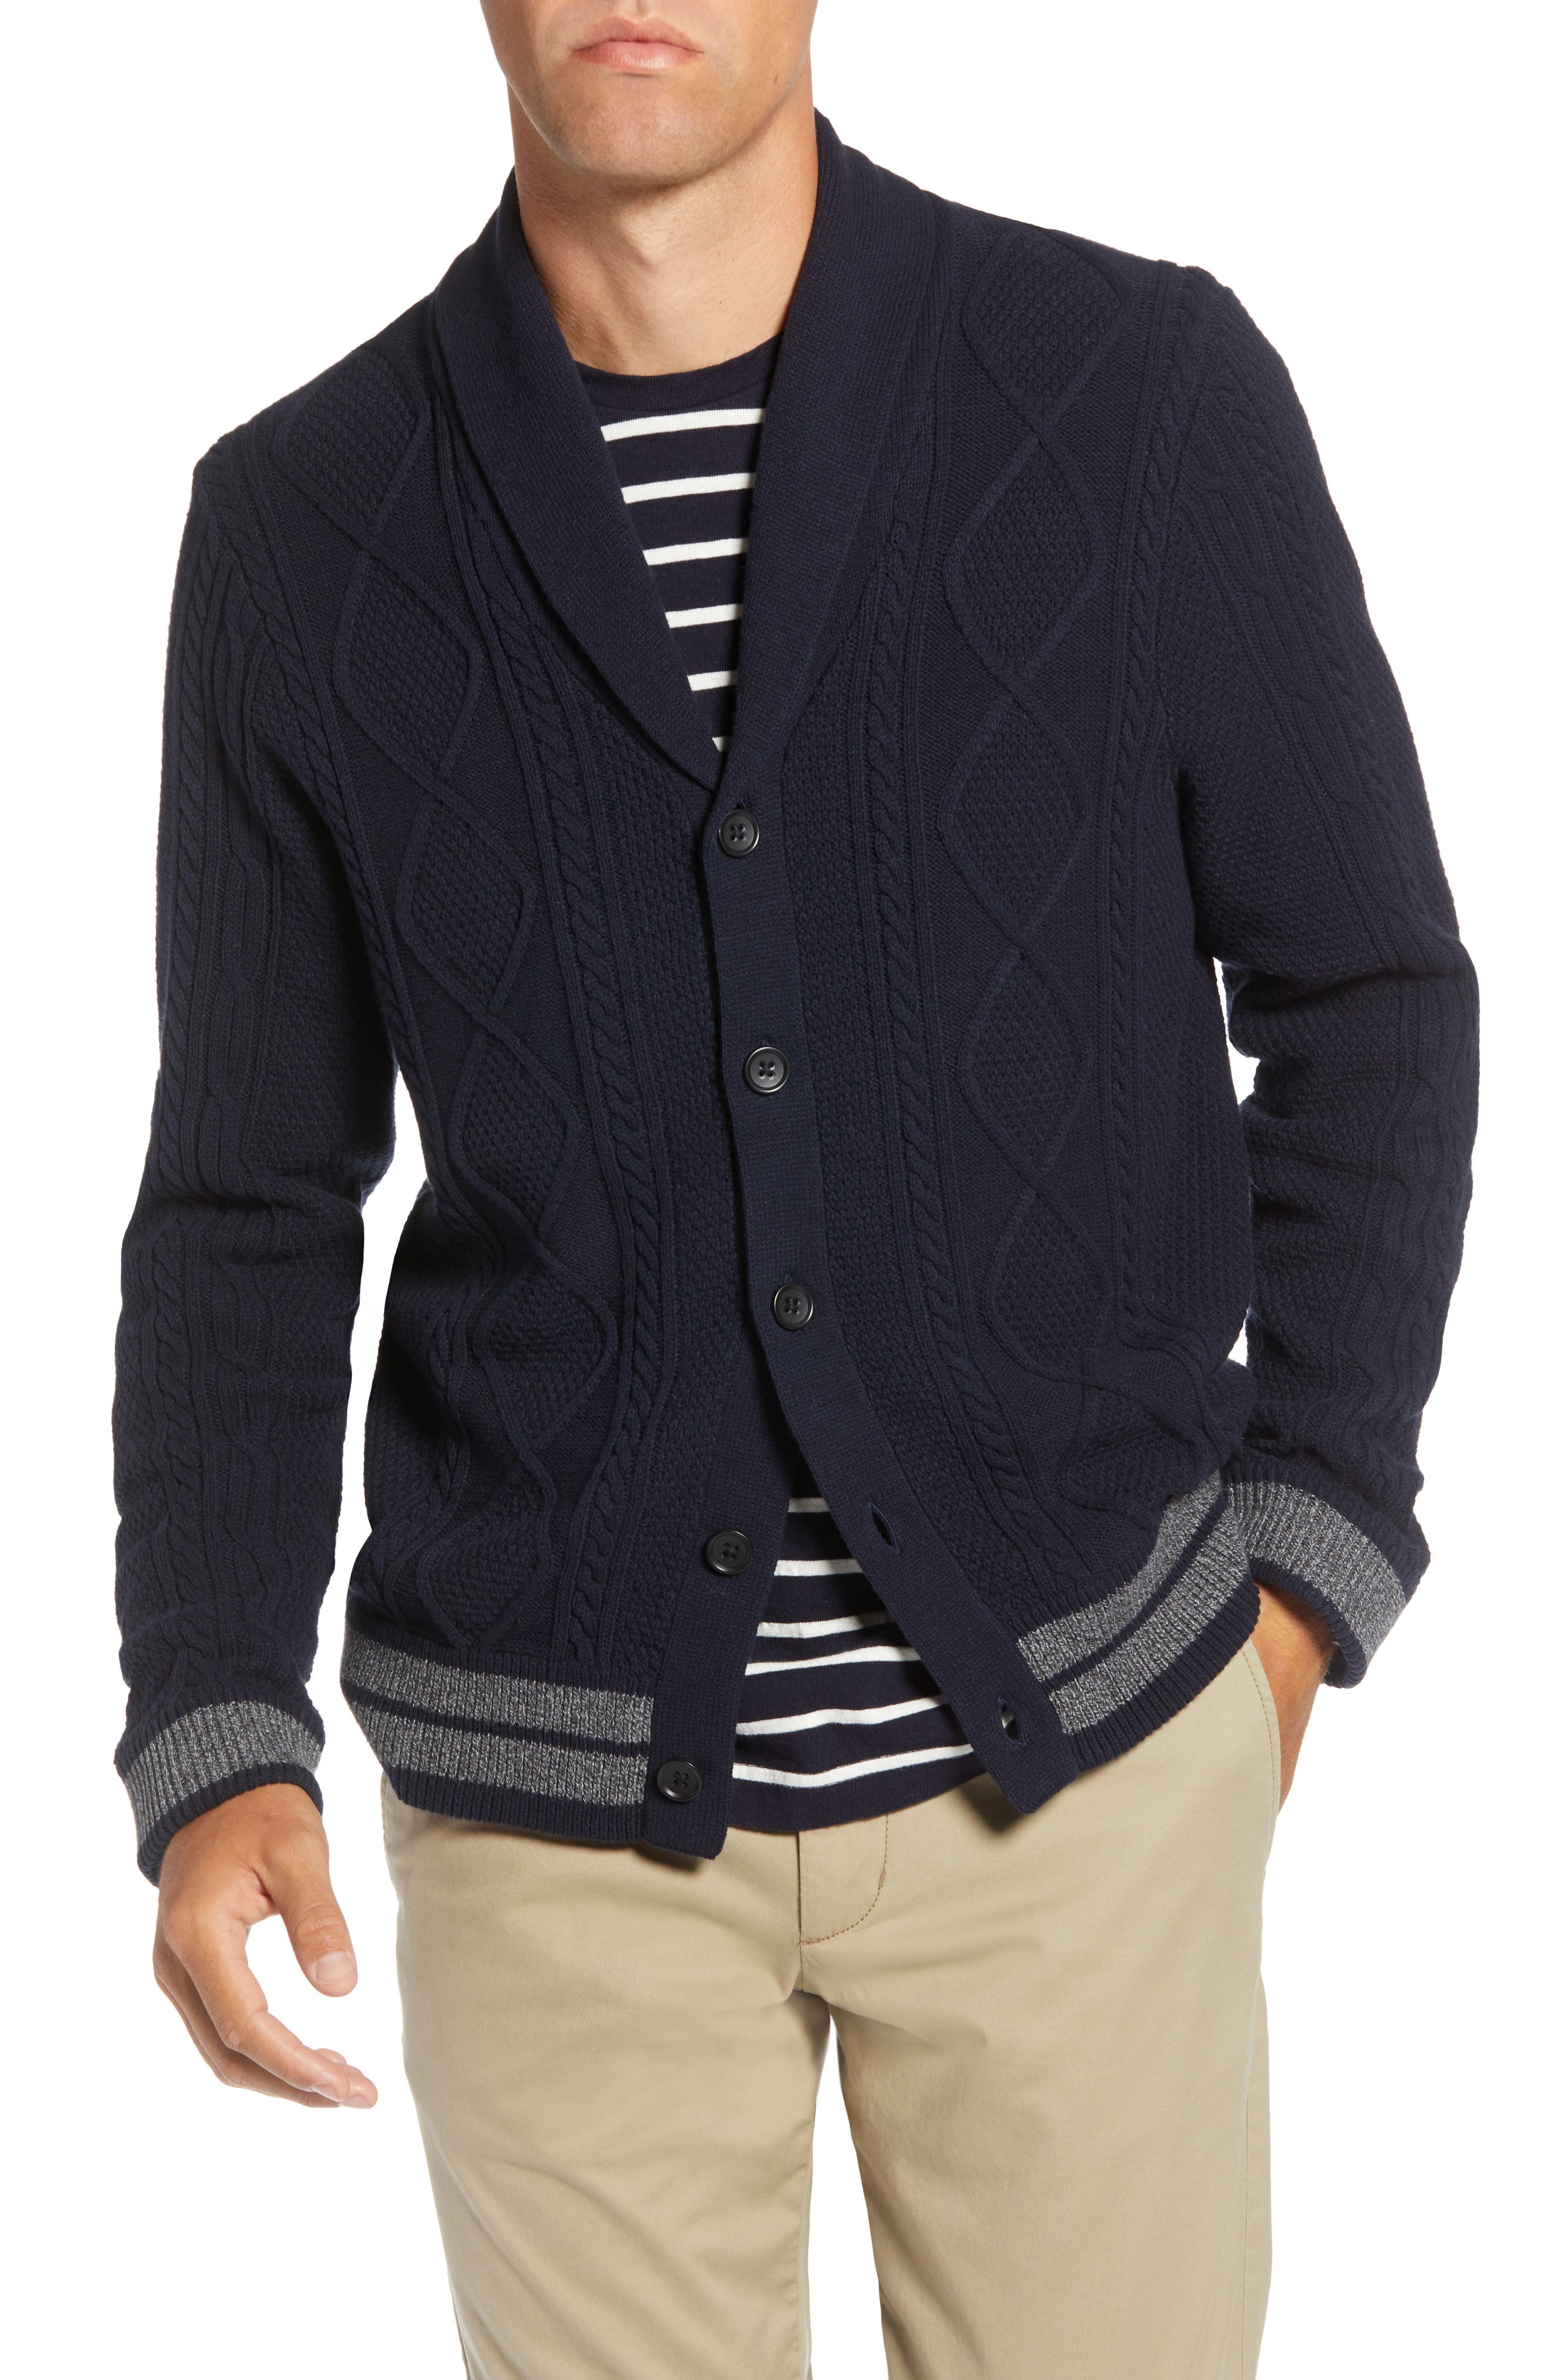 1920s Mens Sweaters, Pullovers, Cardigans Mens 1901 Cable Knit Shawl Collar Cardigan $49.49 AT vintagedancer.com